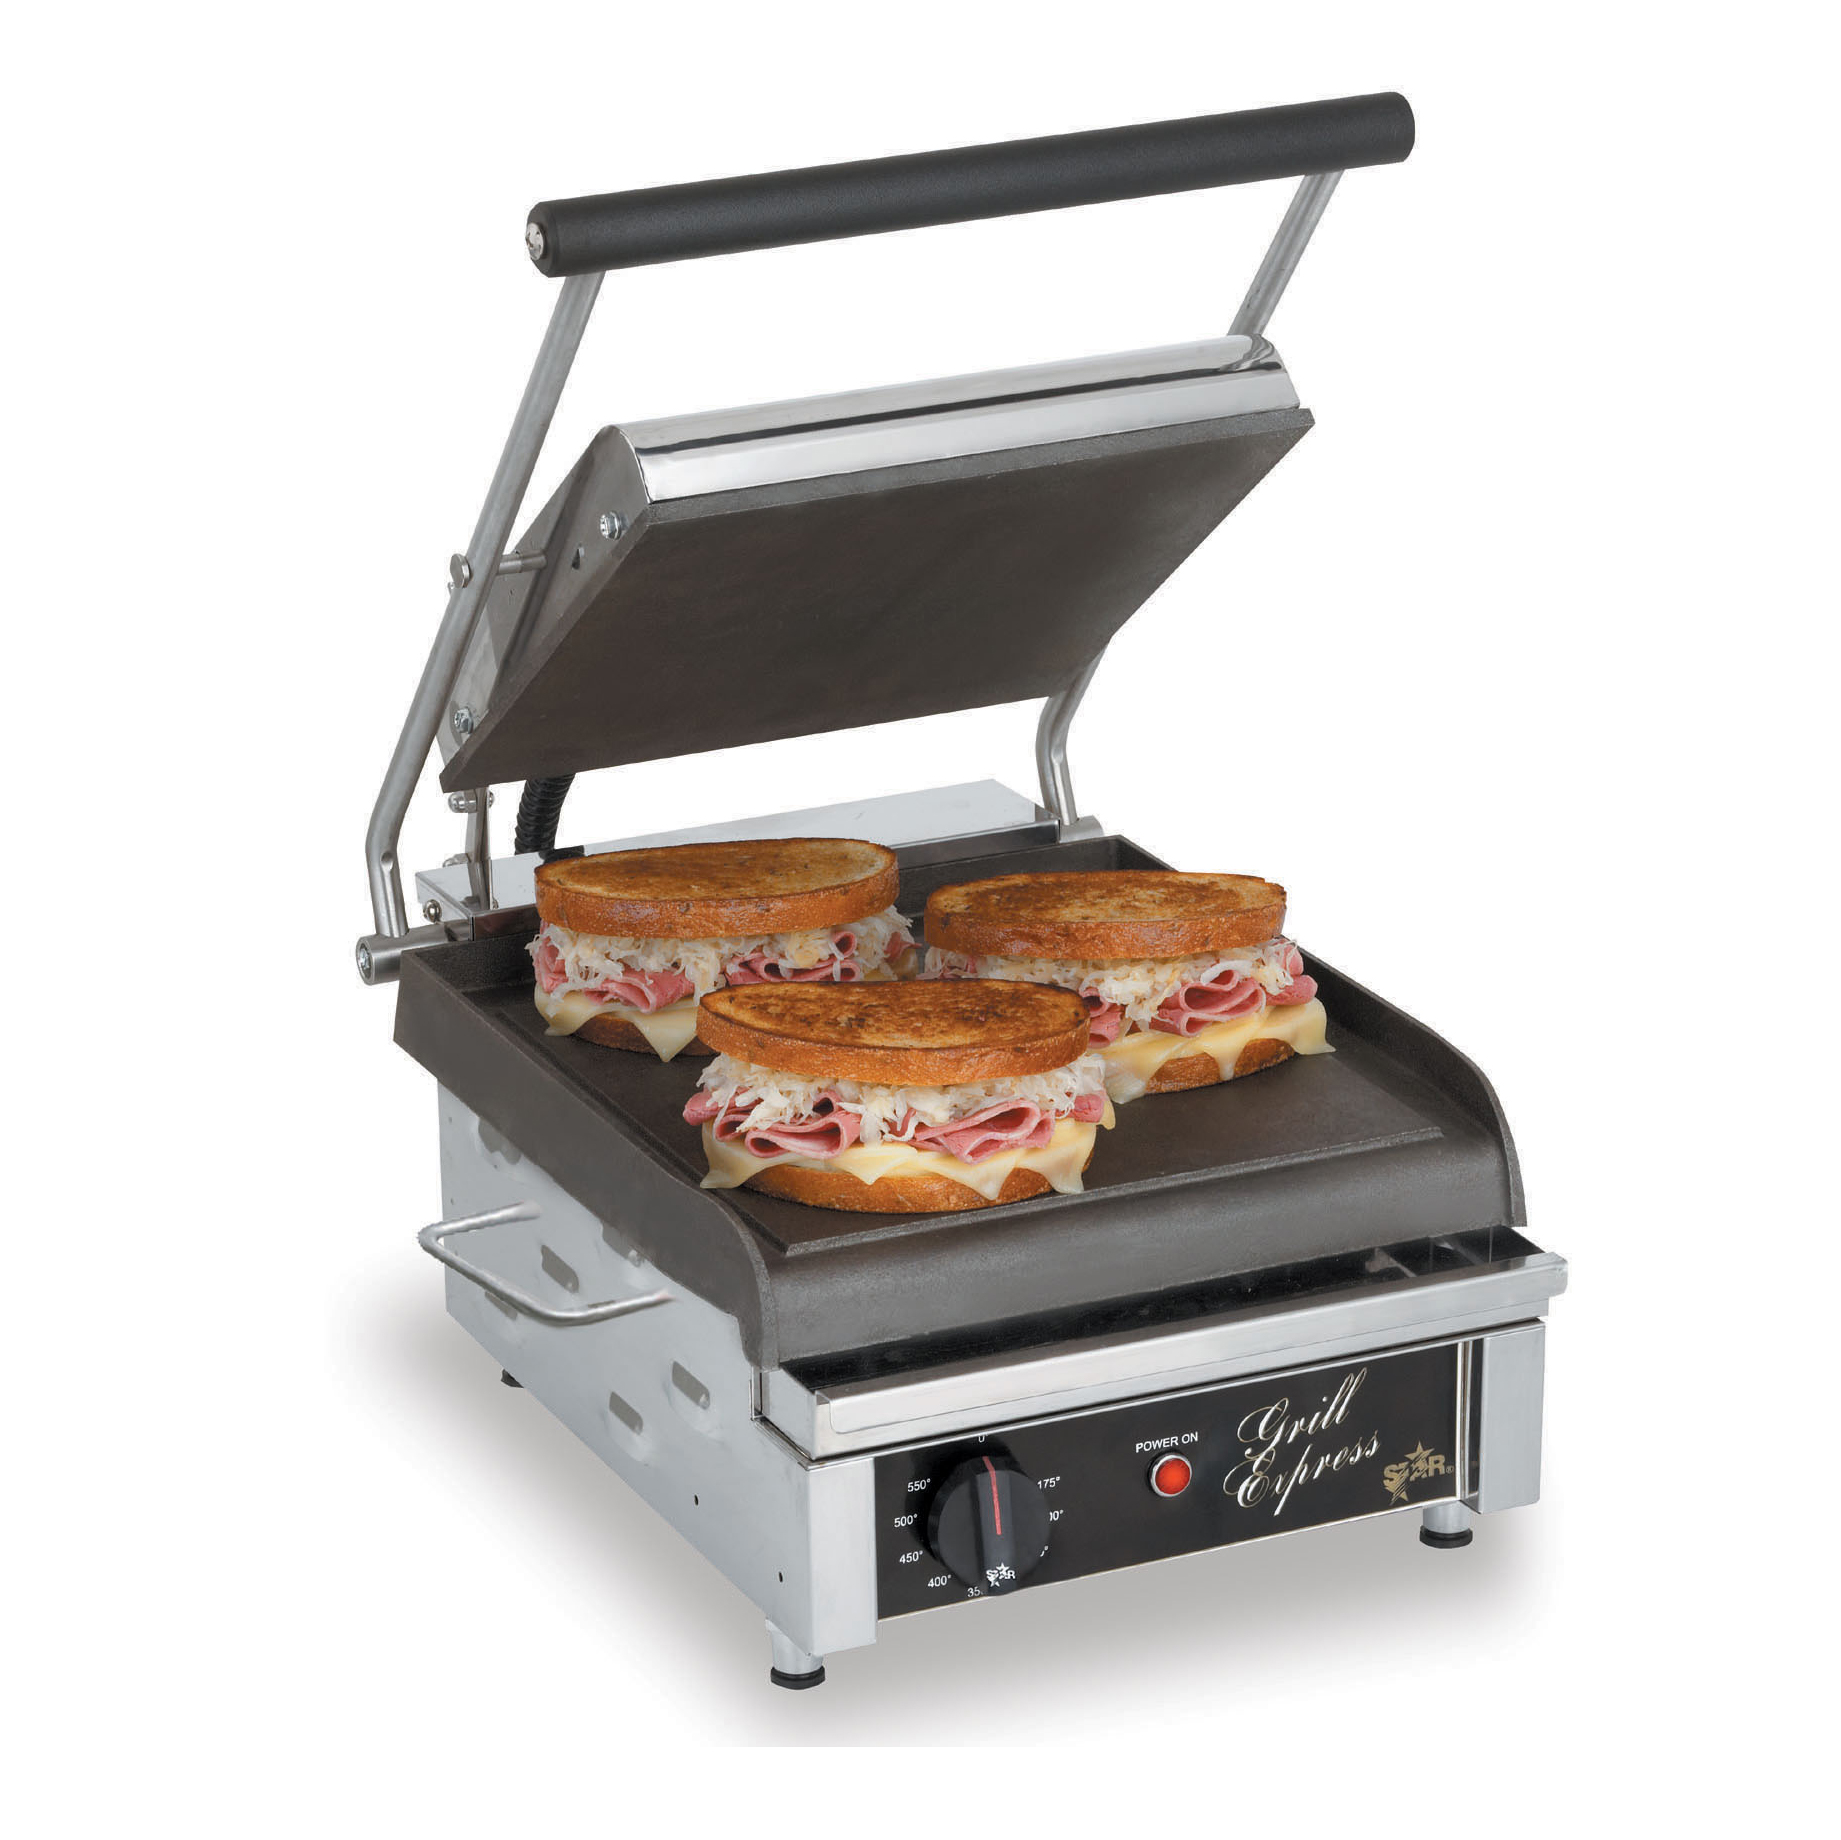 Star GX10IS sandwich / panini grill